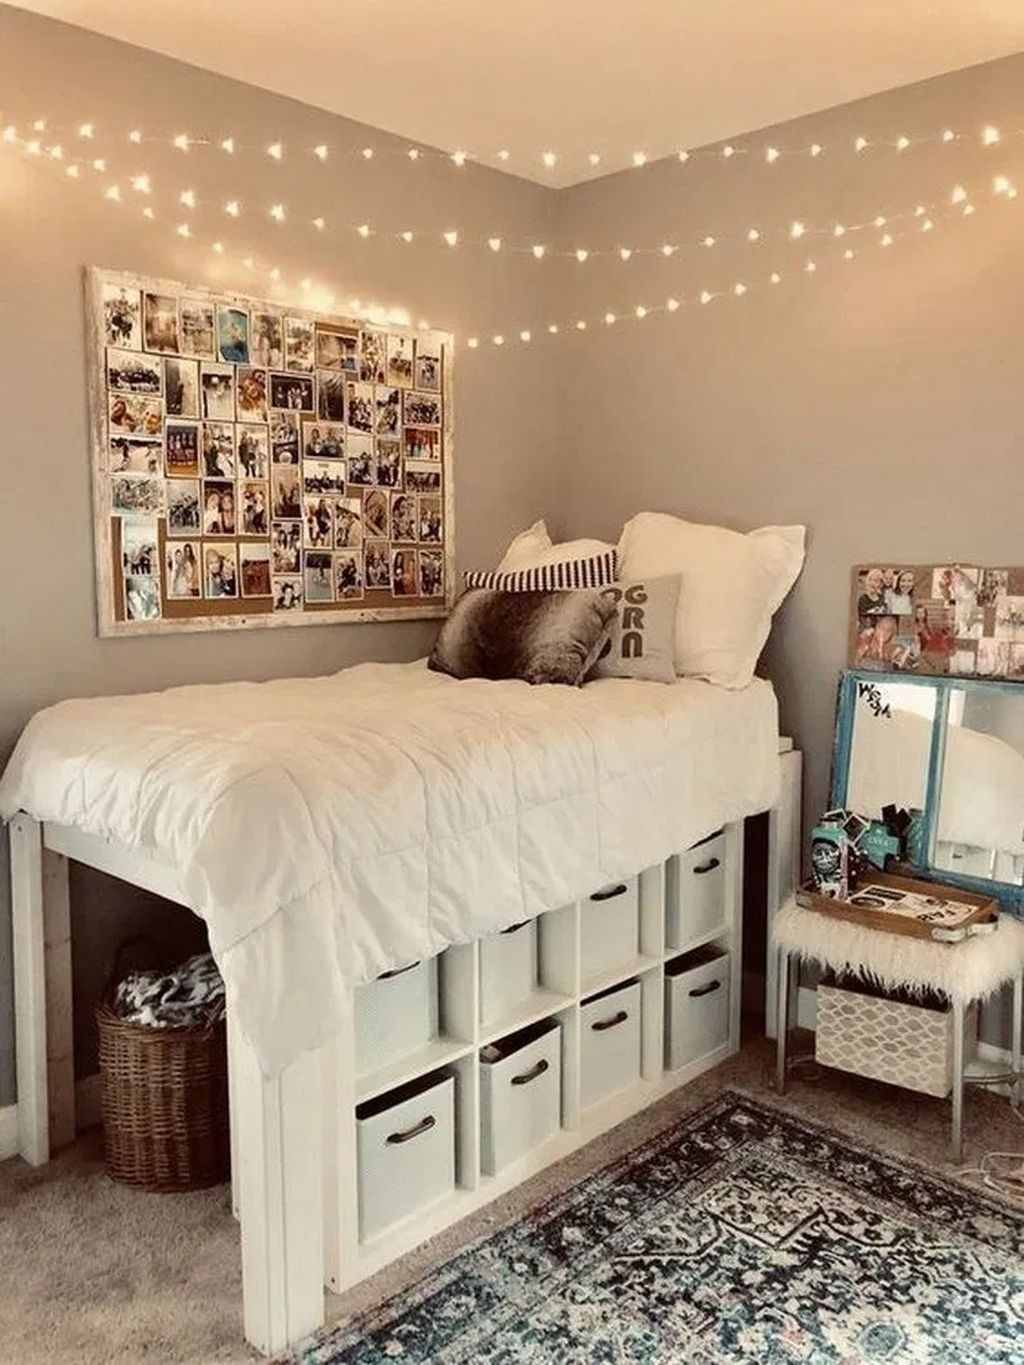 Fanciable Dorm Decorating Ideas for Girls On Exquisite 101 Lovely Bedroom Decoration Ideas for Teenage Girl On Dorm Decorating Ideas for Girls